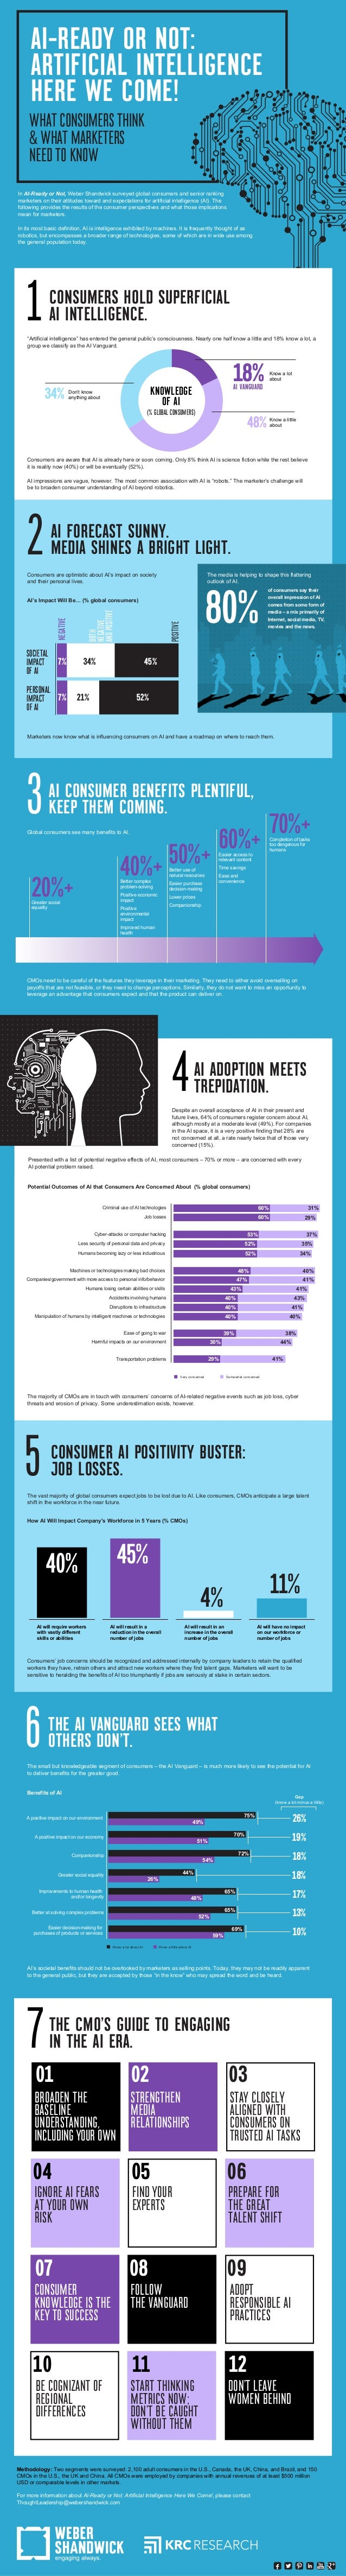 In AI-Ready or Not, Weber Shandwick surveyed global consumers and senior ranking marketers on their attitudes toward and e...